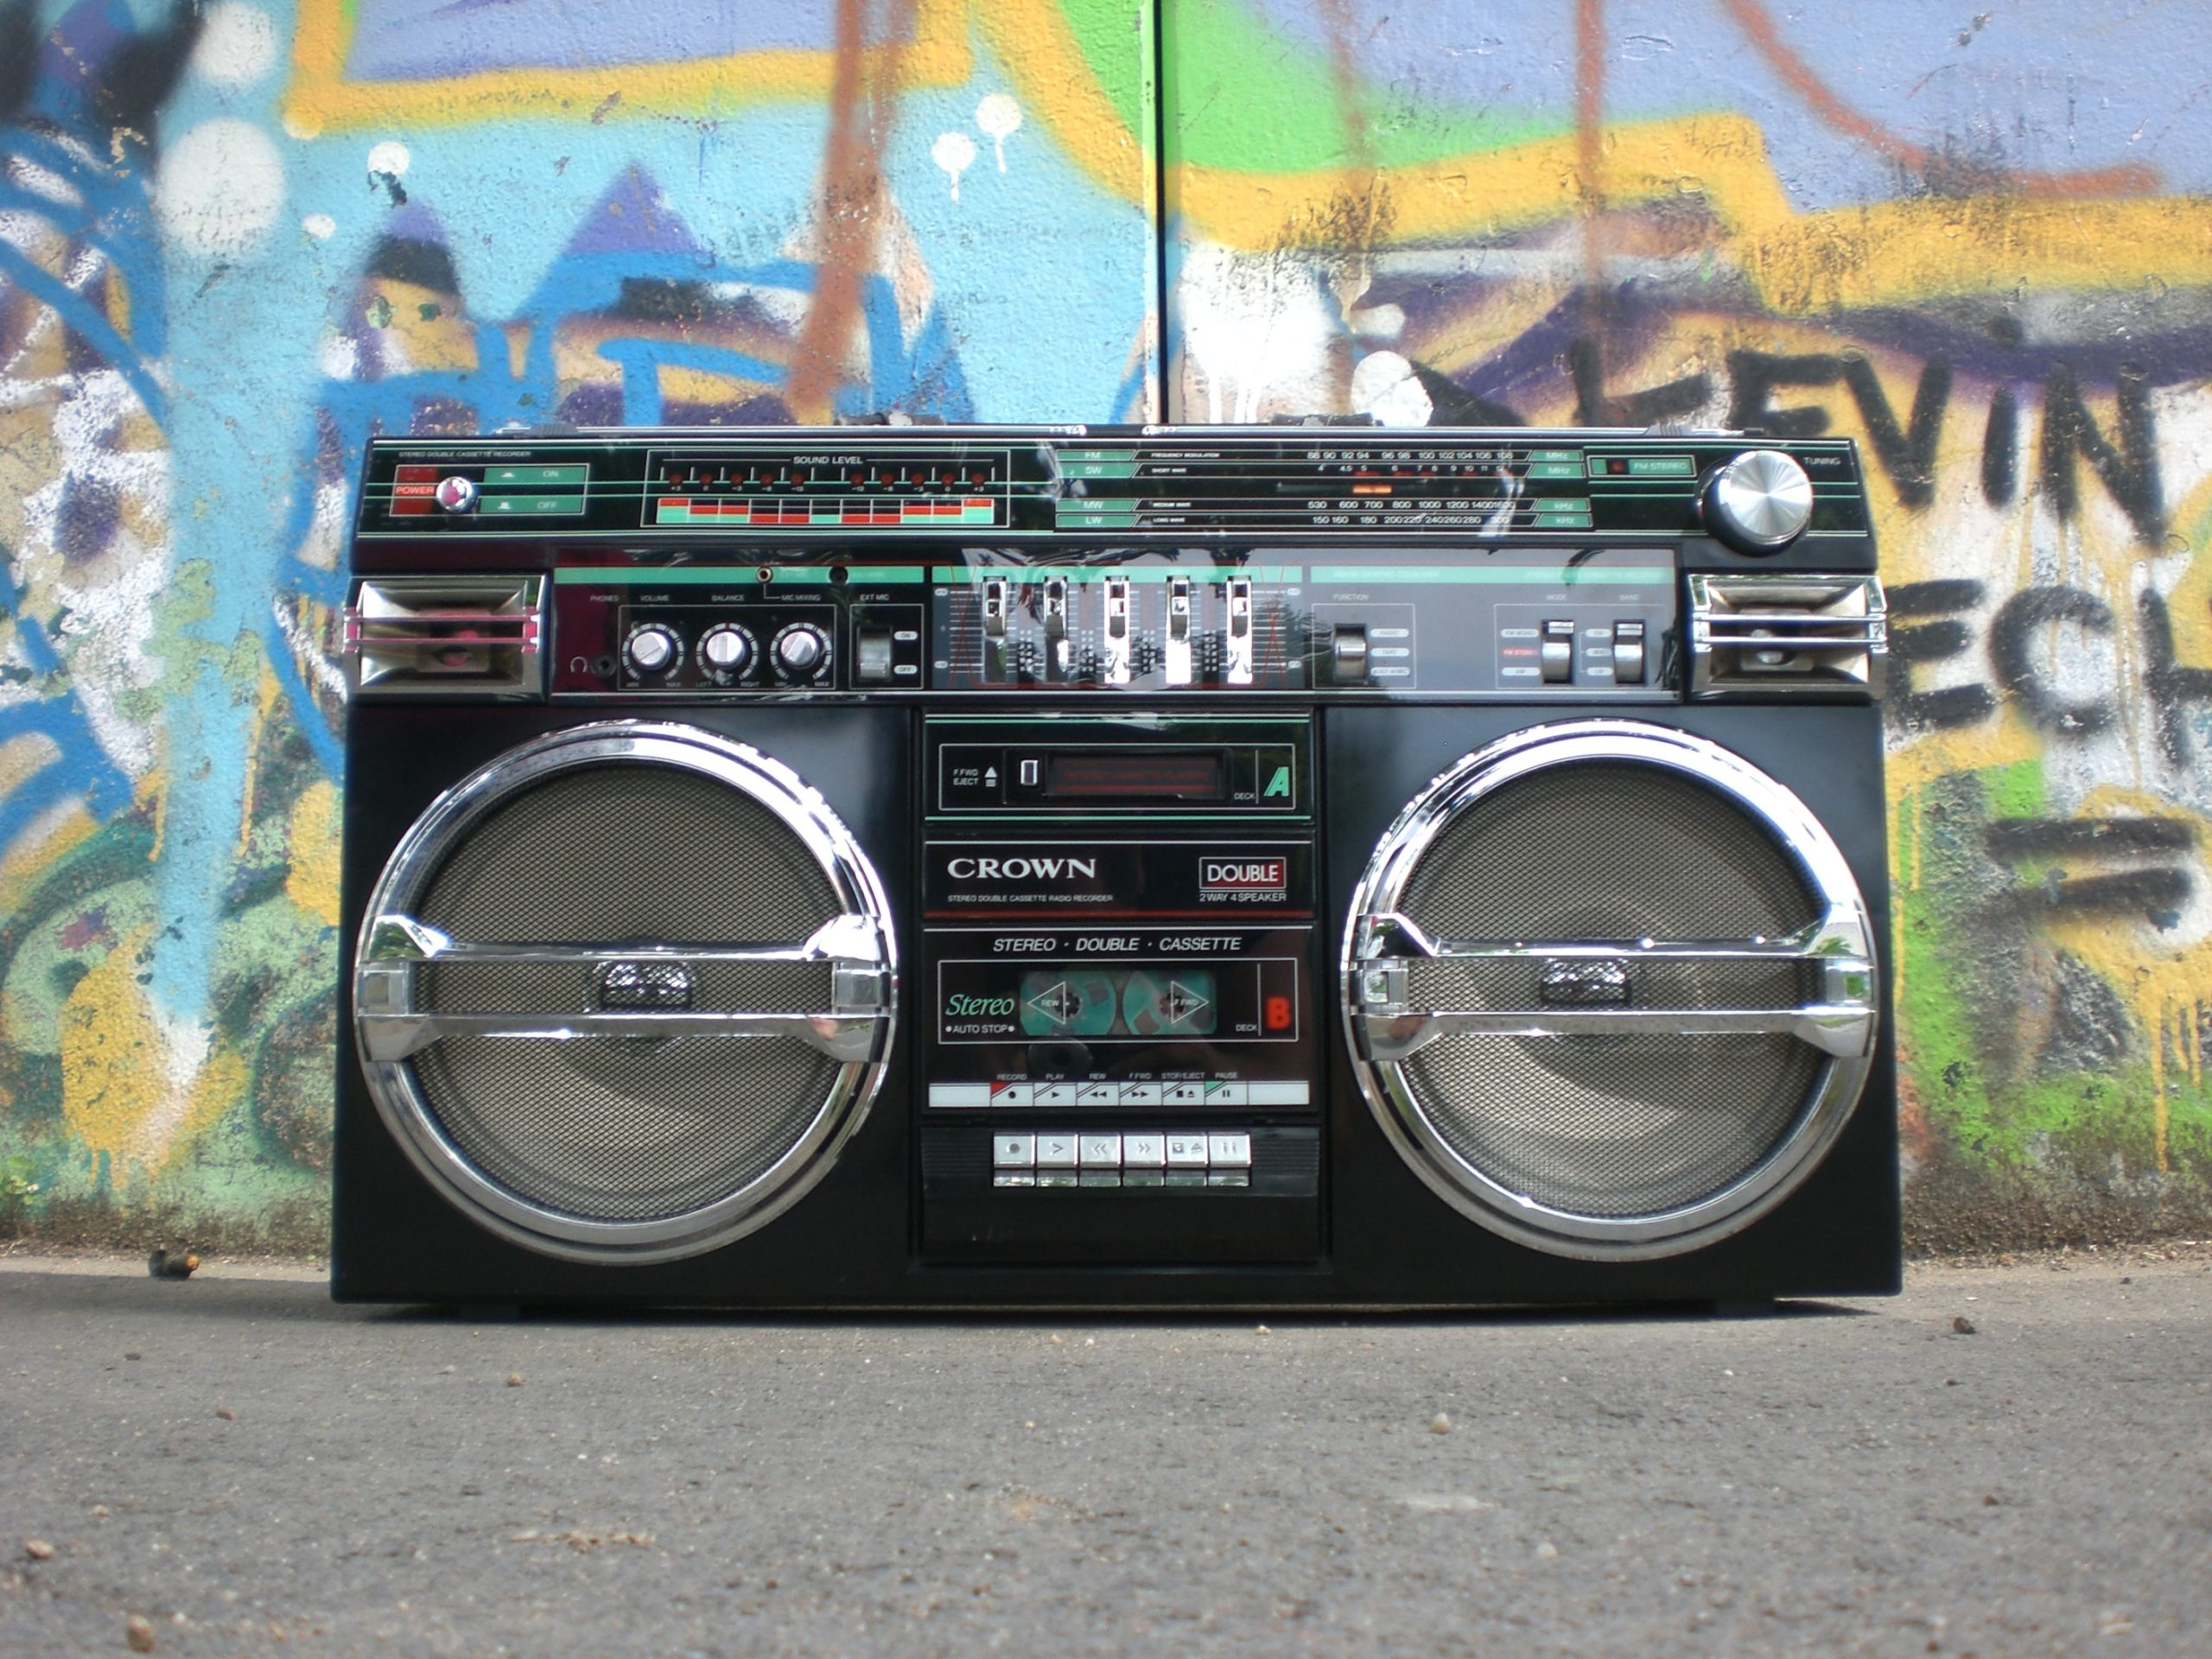 Photo of black and silver cassette player.